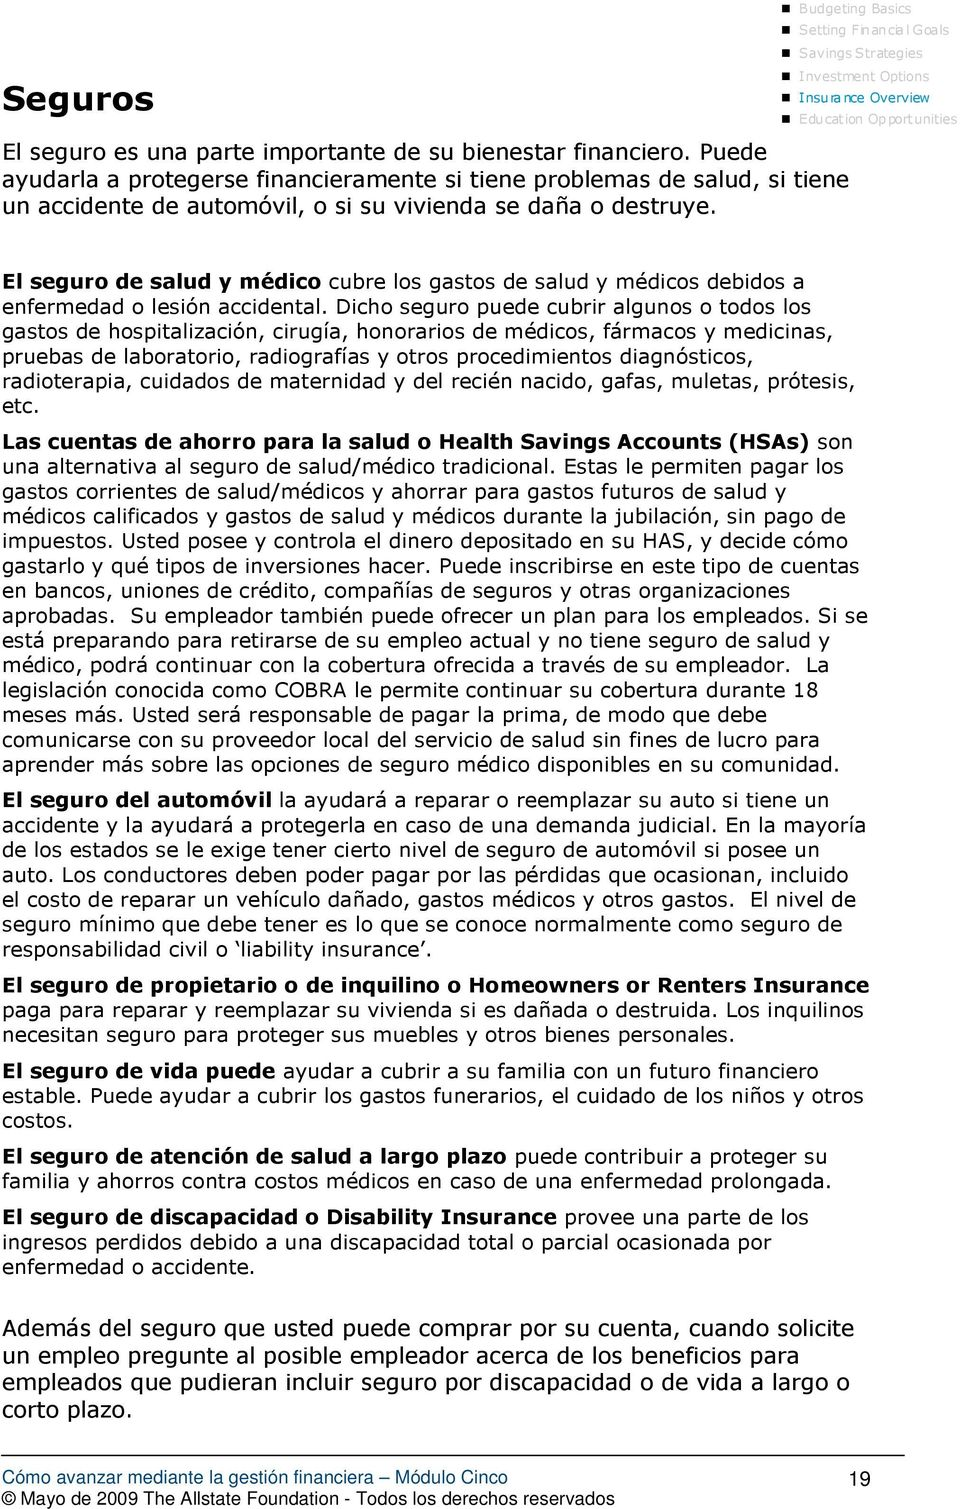 Setting Financial Goals Savings Strategies Investment Options Insurance Overview Education Opportunities El seguro de salud y médico cubre los gastos de salud y médicos debidos a enfermedad o lesión